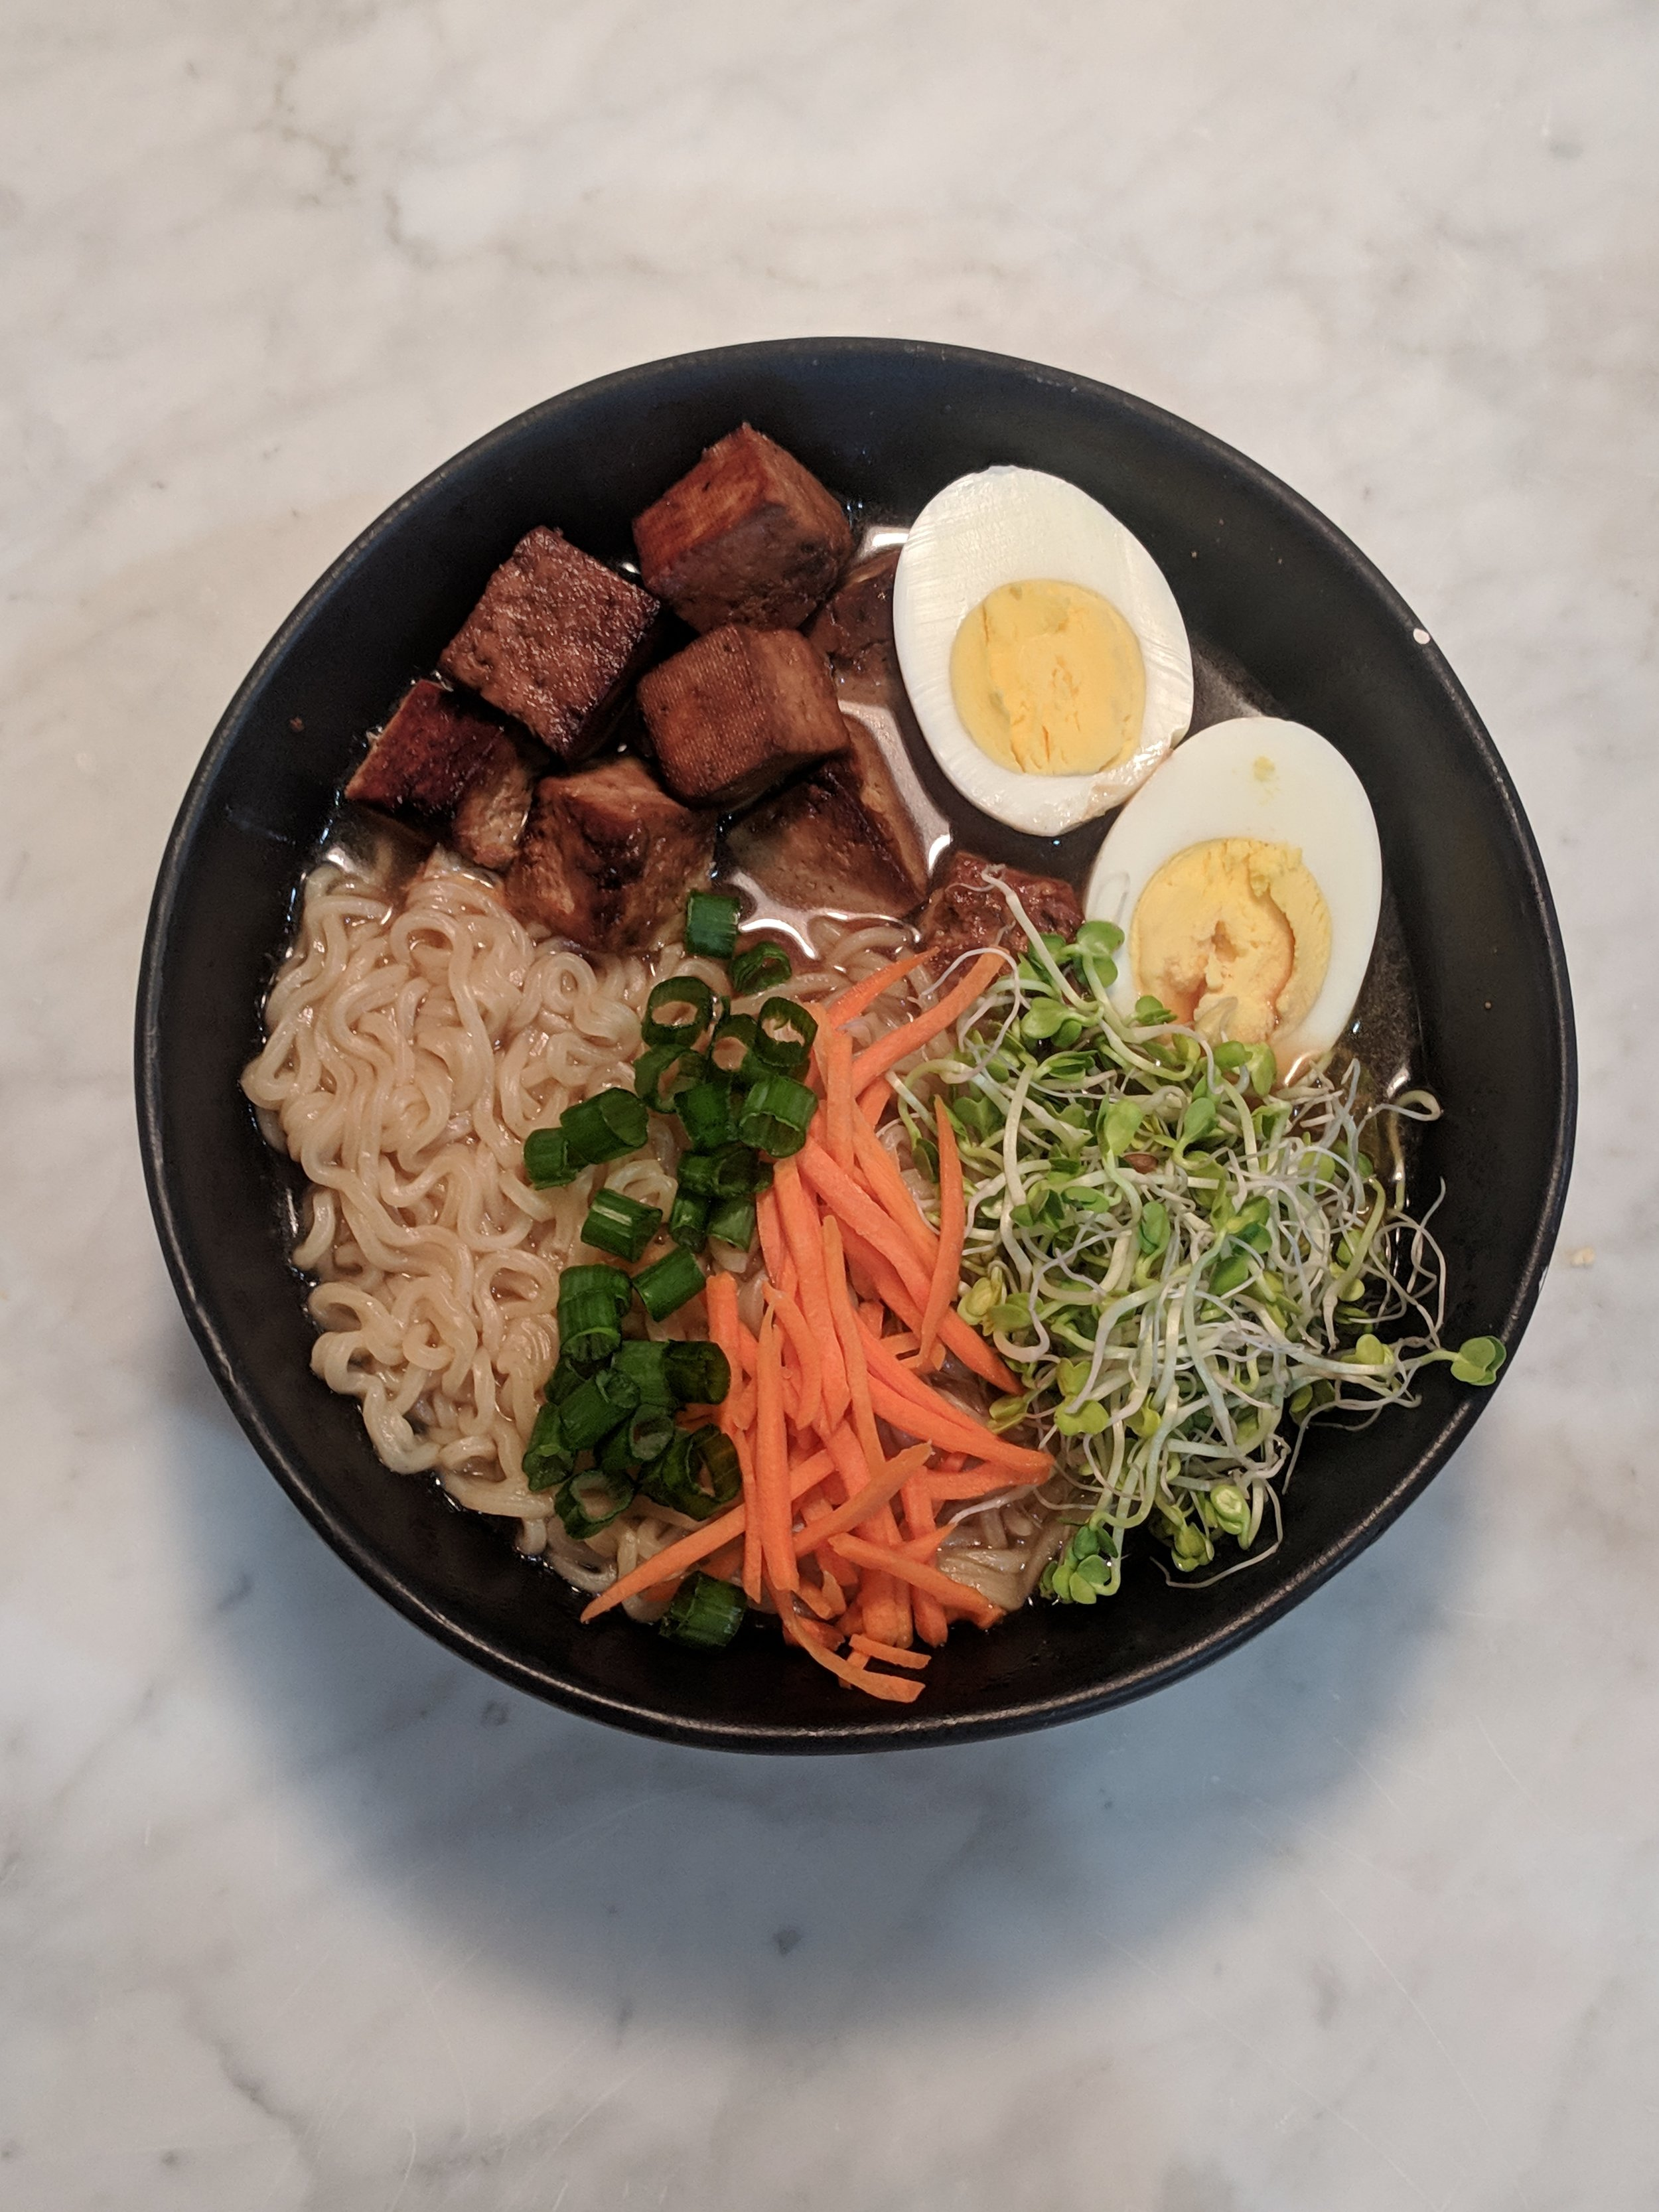 Loaded Ramen Bowl - Let's face it, there is no bad time for ramen! Liven up a plain ramen pack with tofu, eggs, veggies and of course SPROUTS!Recipe:One pack of ramenPan fried tofuA hard boiled eggGreen OnionShredded CarrotsRadish Sprouts!